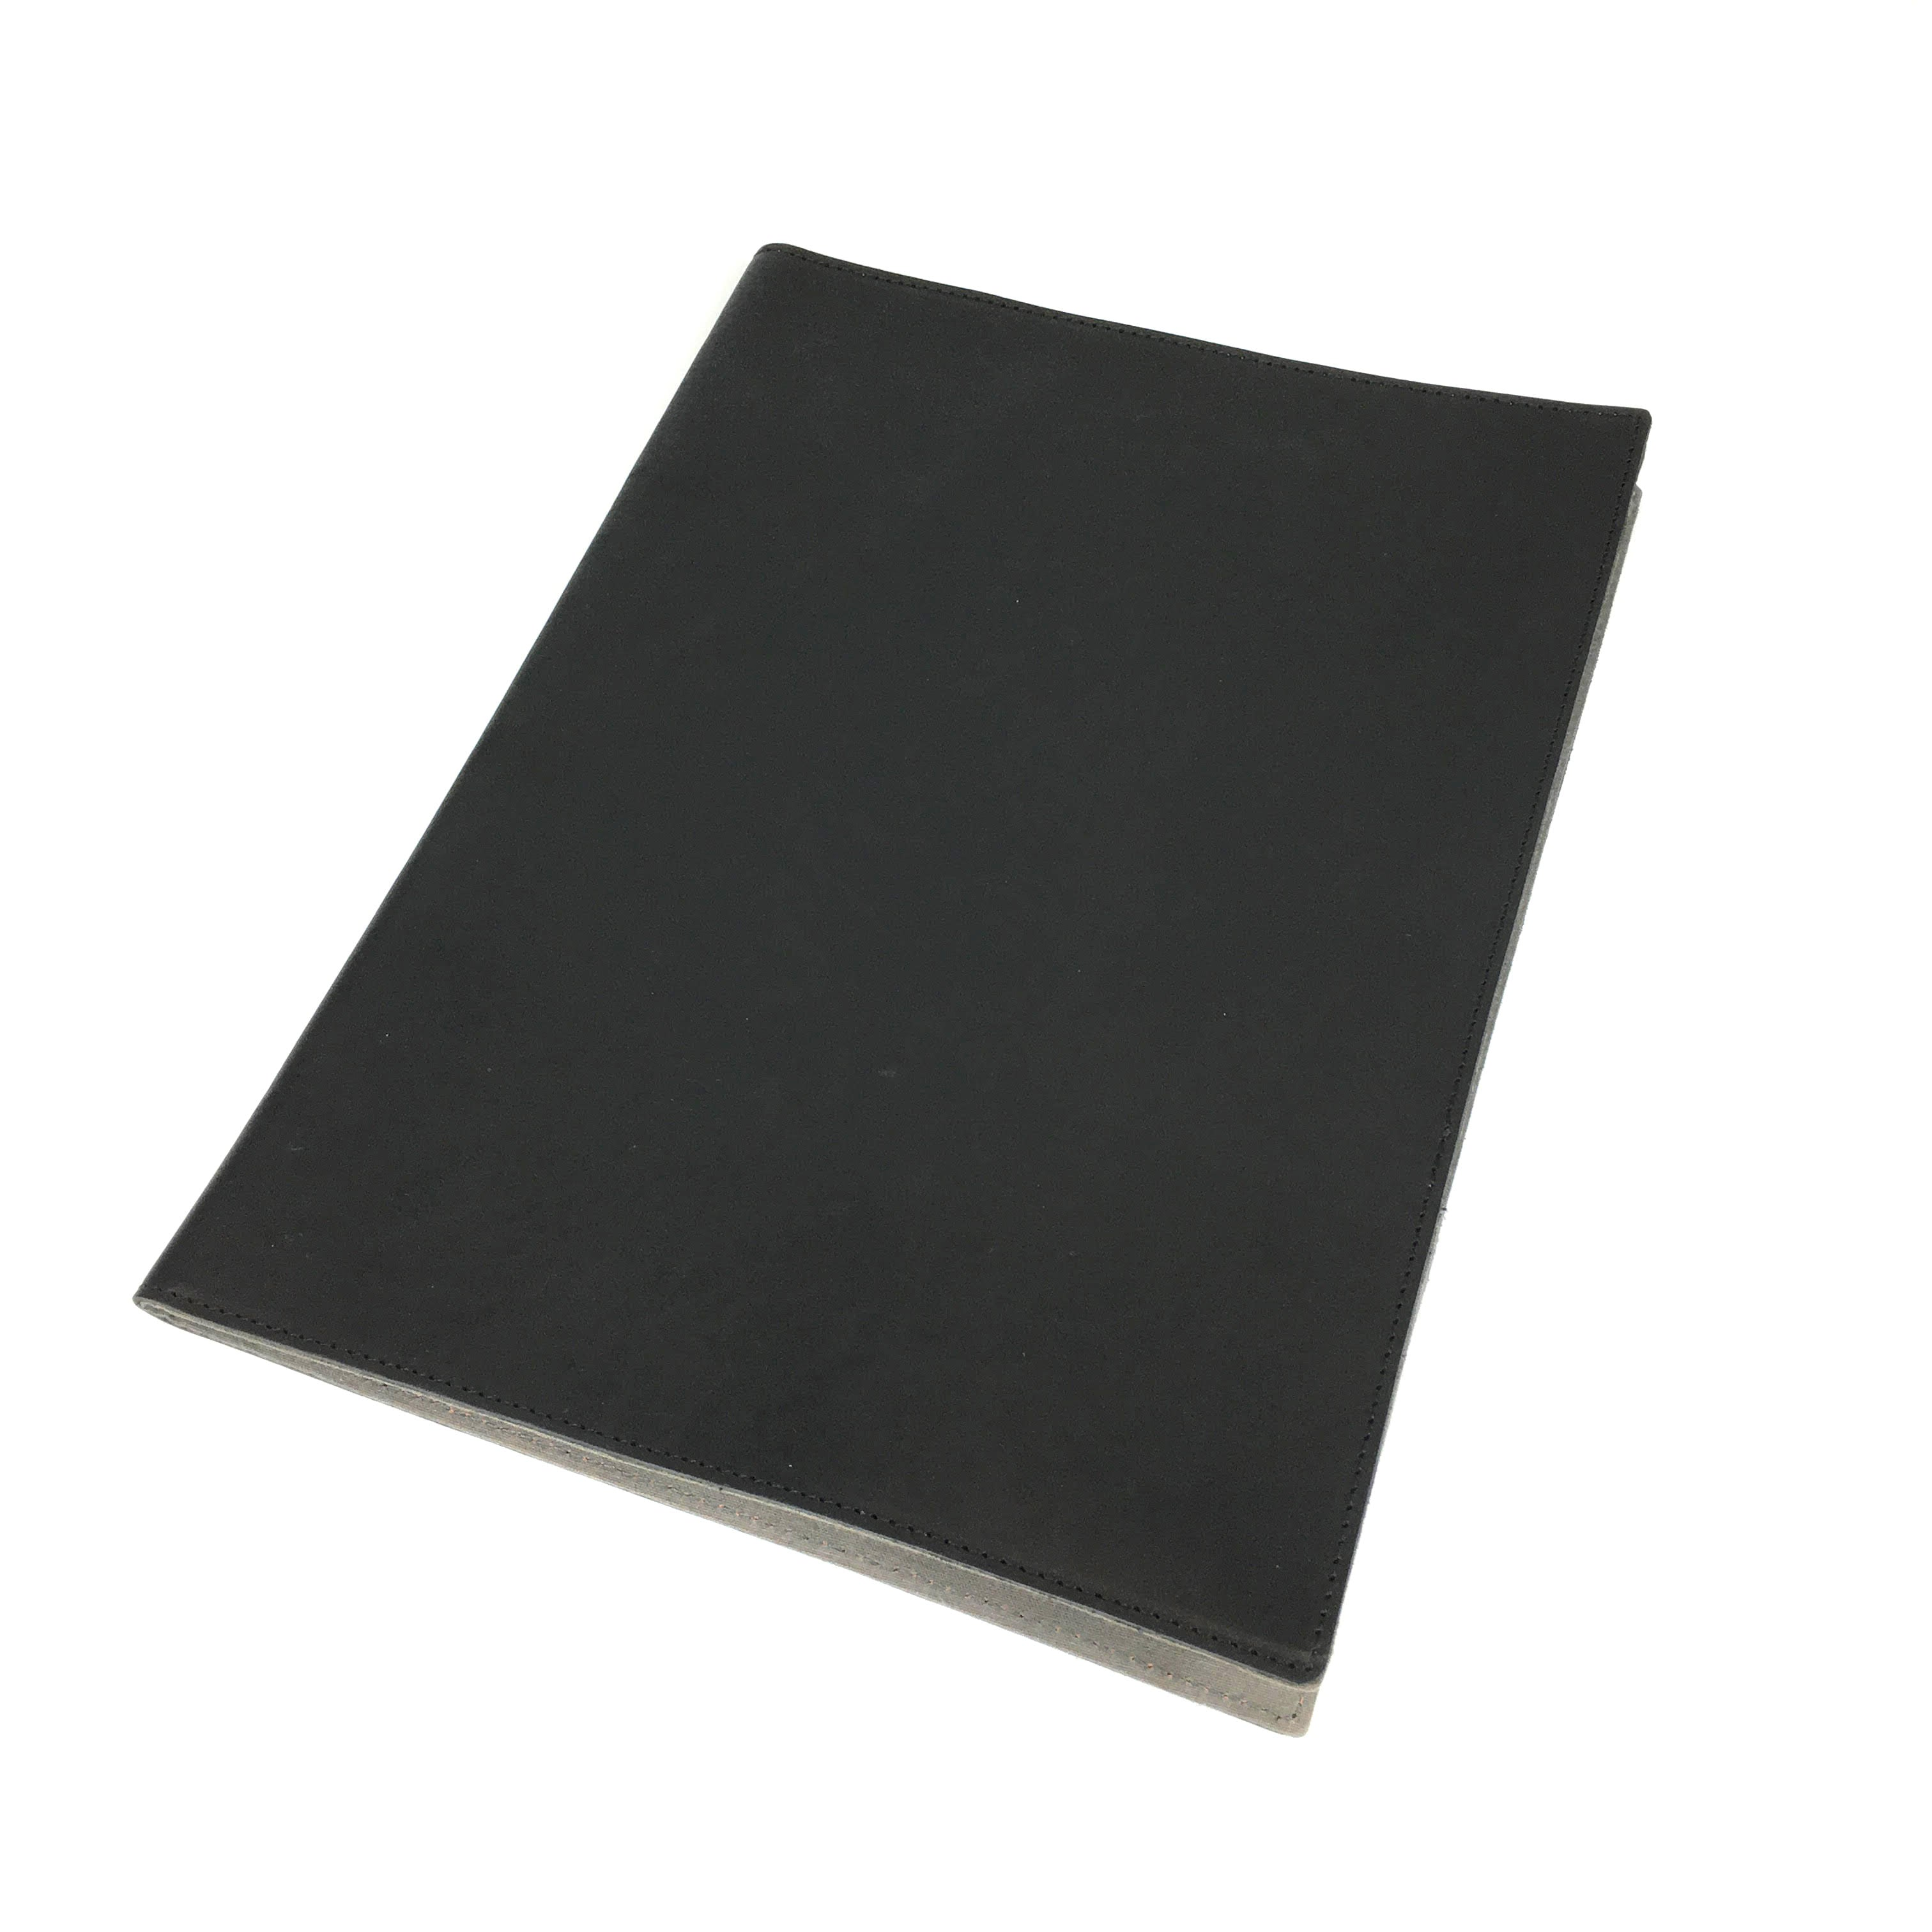 leather portfolio case. premium leather portfolio. designer leather portfolio. luxury leather portfolios. best leather portfolio for interview. vegan leather portfolio. handmade leather portfolio. black